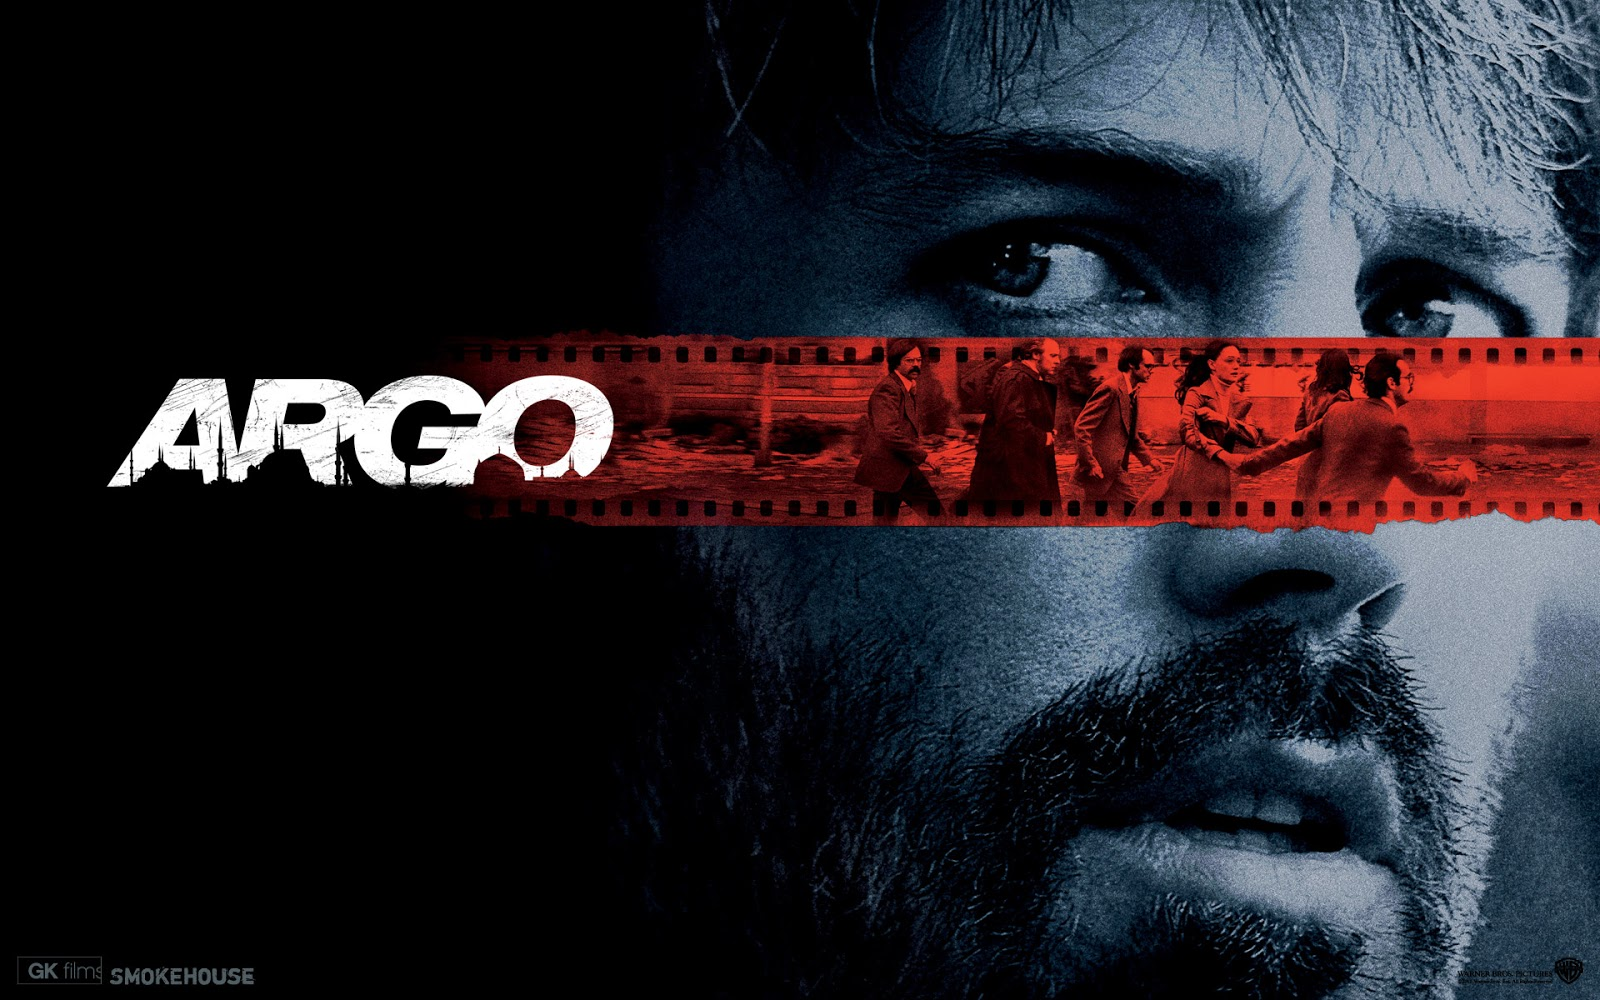 http://2.bp.blogspot.com/-nIyQEA_tn80/UStpqHuIVVI/AAAAAAAAHNg/nhvhf8ooEZM/s1600/Ben-Affleck-Argo-Movie-HD-Wallpaper-Vvallpaper.Net.jpeg